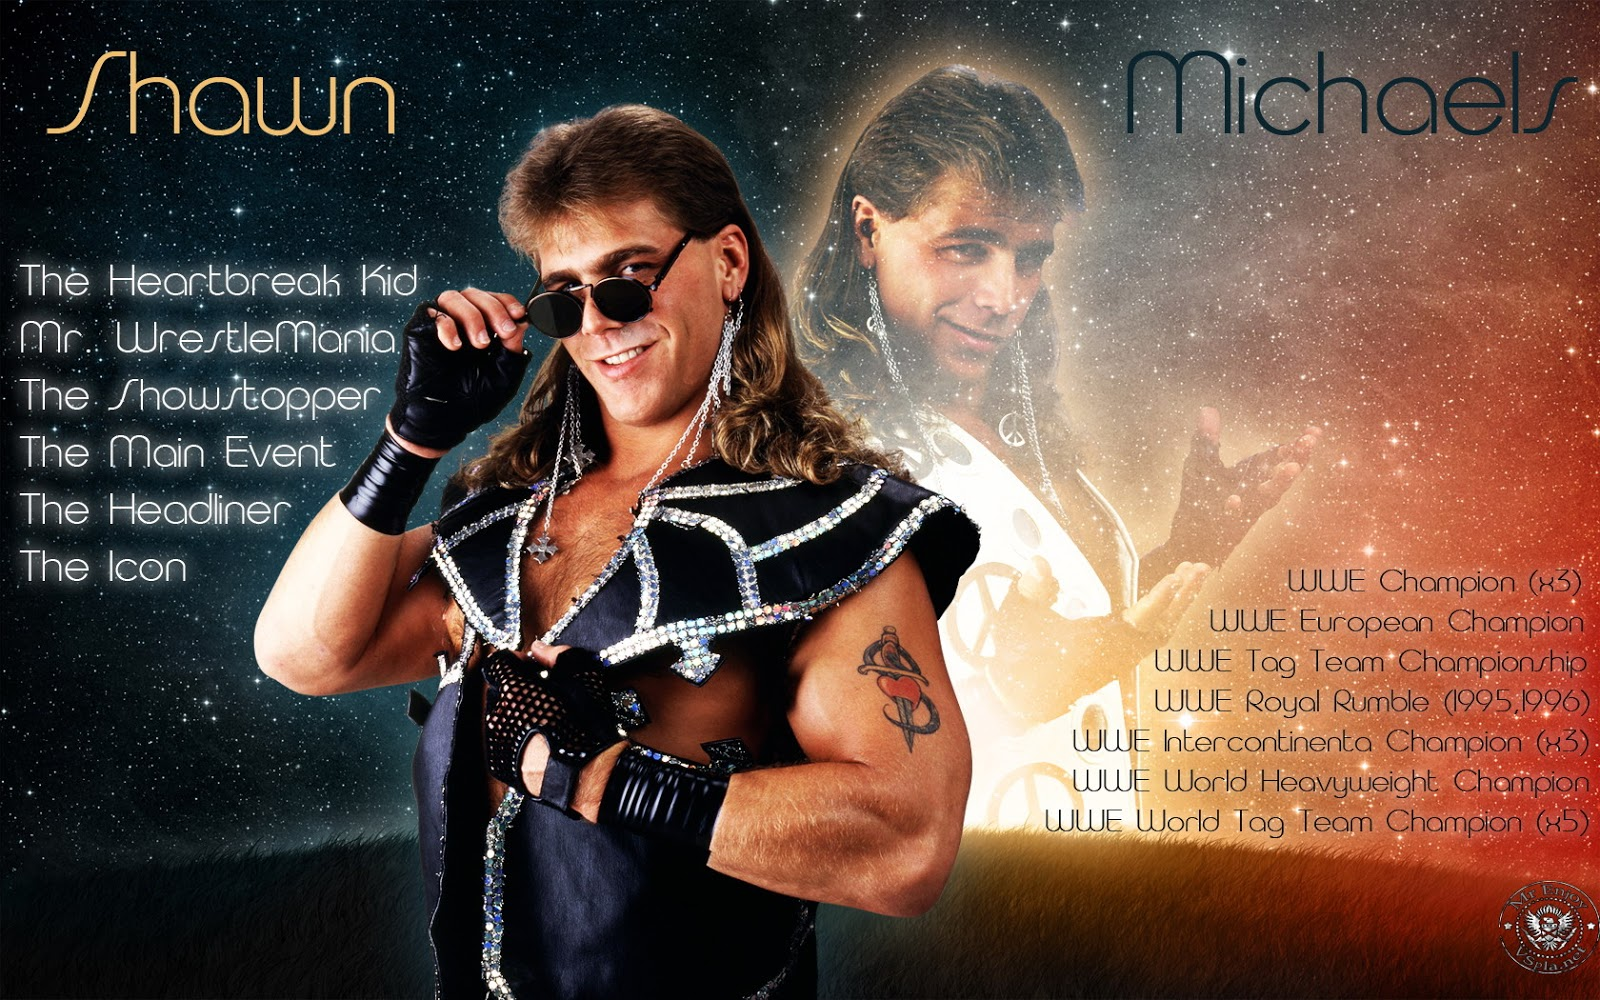 Shawn Michaels Wallpapers High Definition Wallpapers 1600x1000